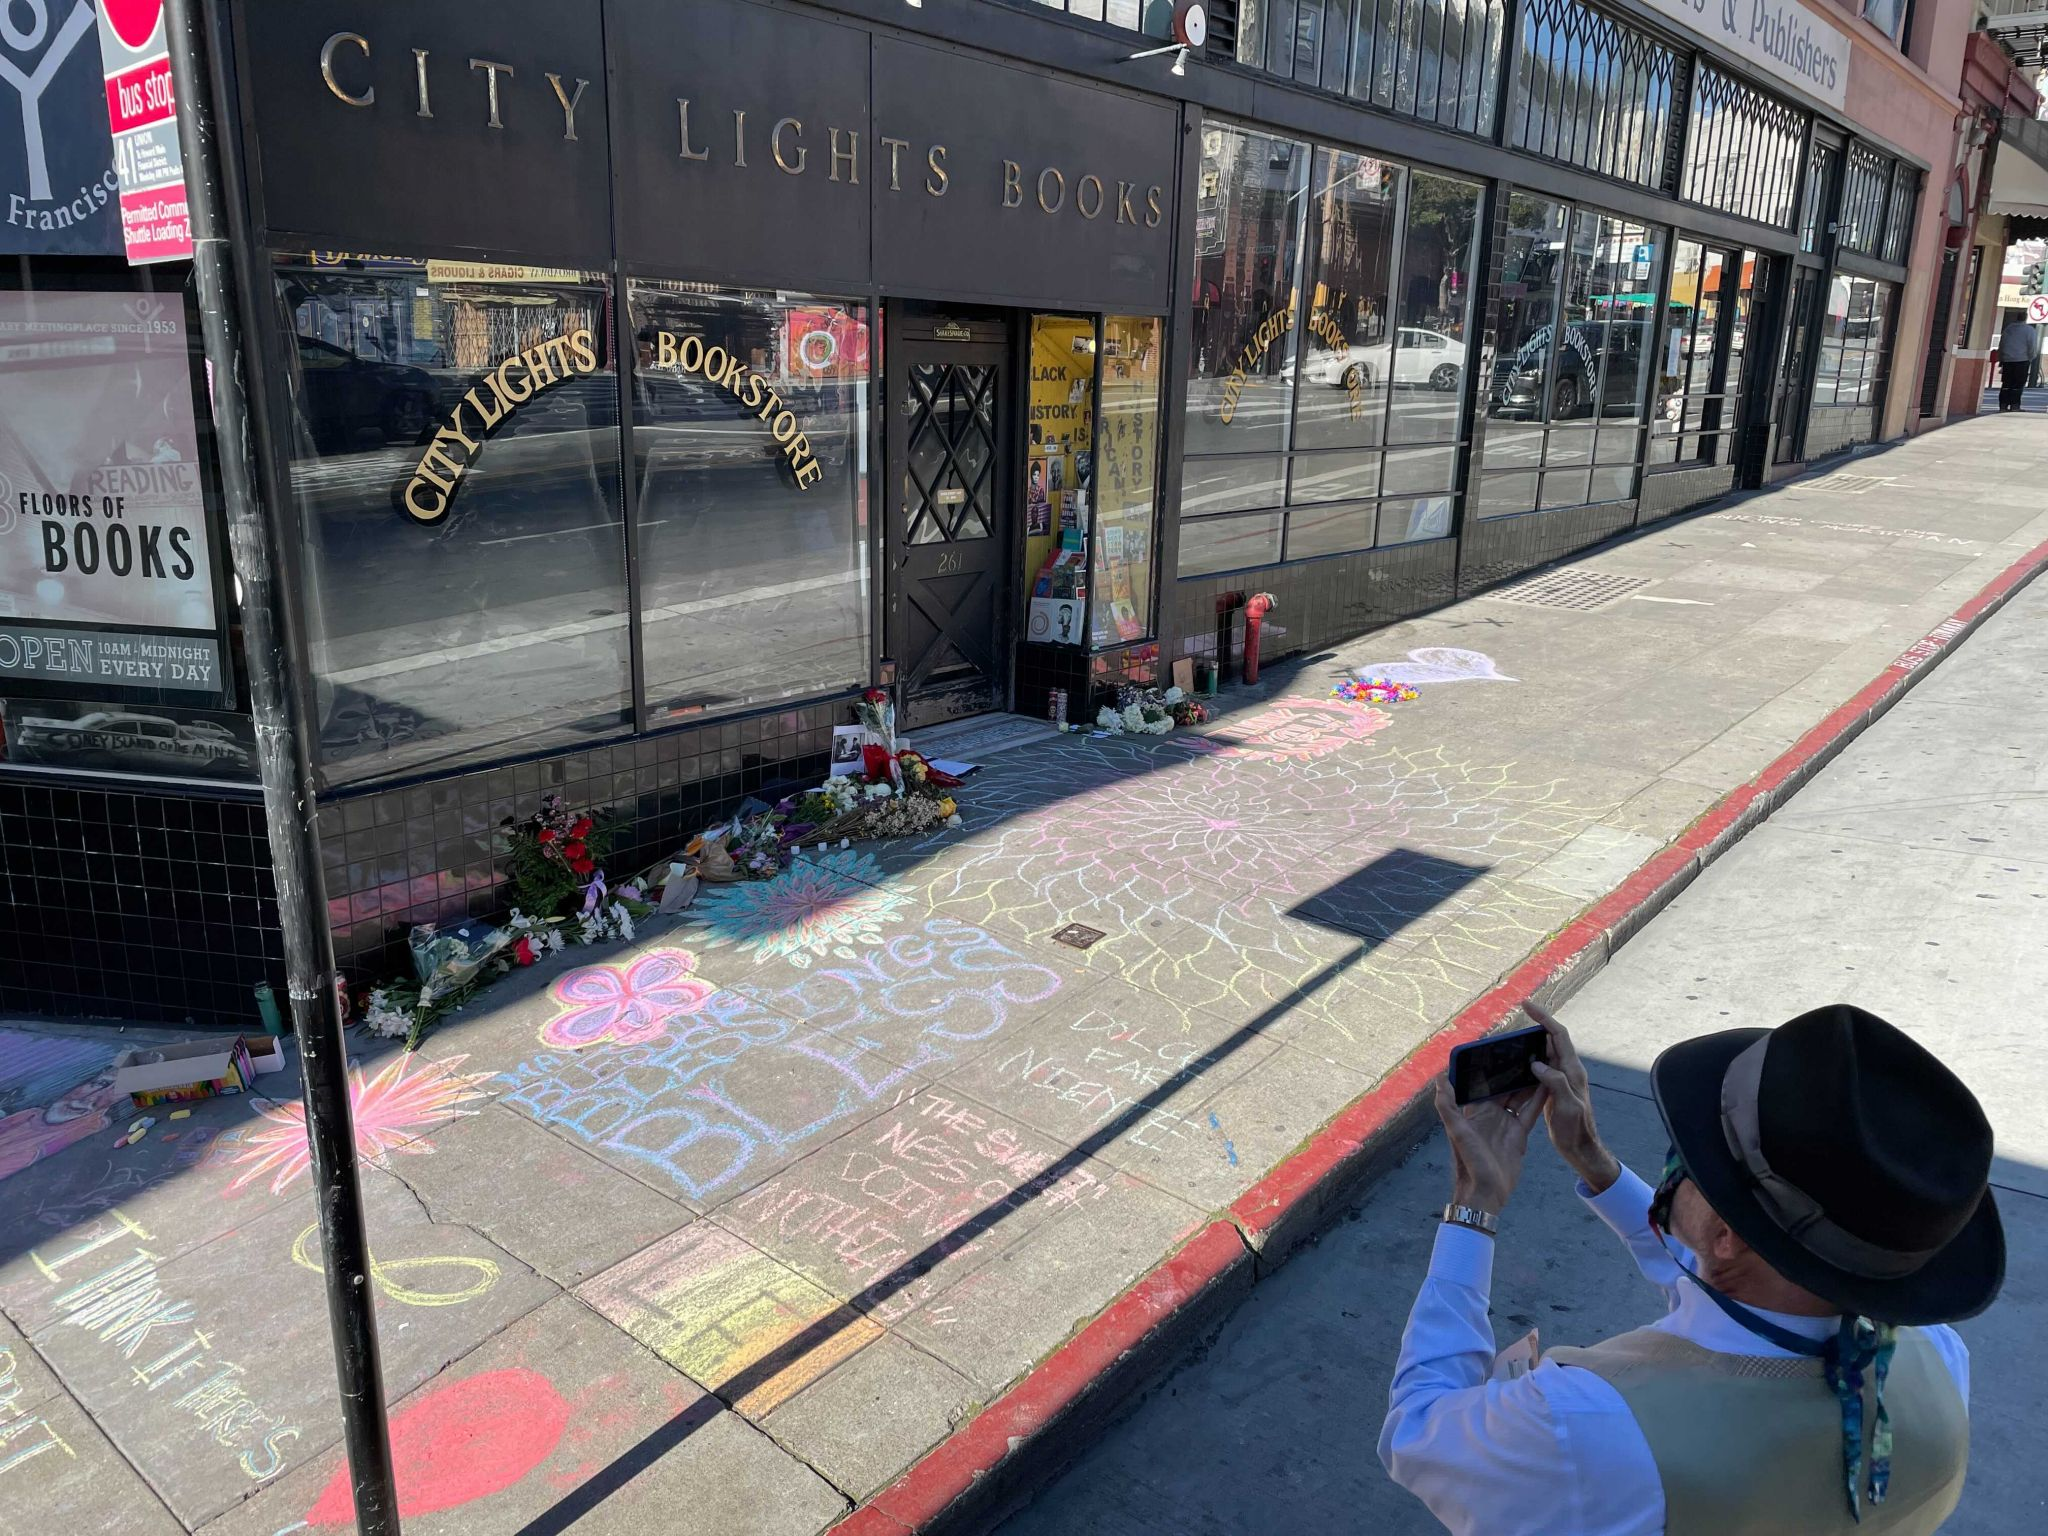 A visitor takes photos of an impromptu memorial in honor of Lawrence Ferlinghetti that appeared overnight in front of City Lights Booksellers & Publishers in San Francisco on Feb. 24, 2021.